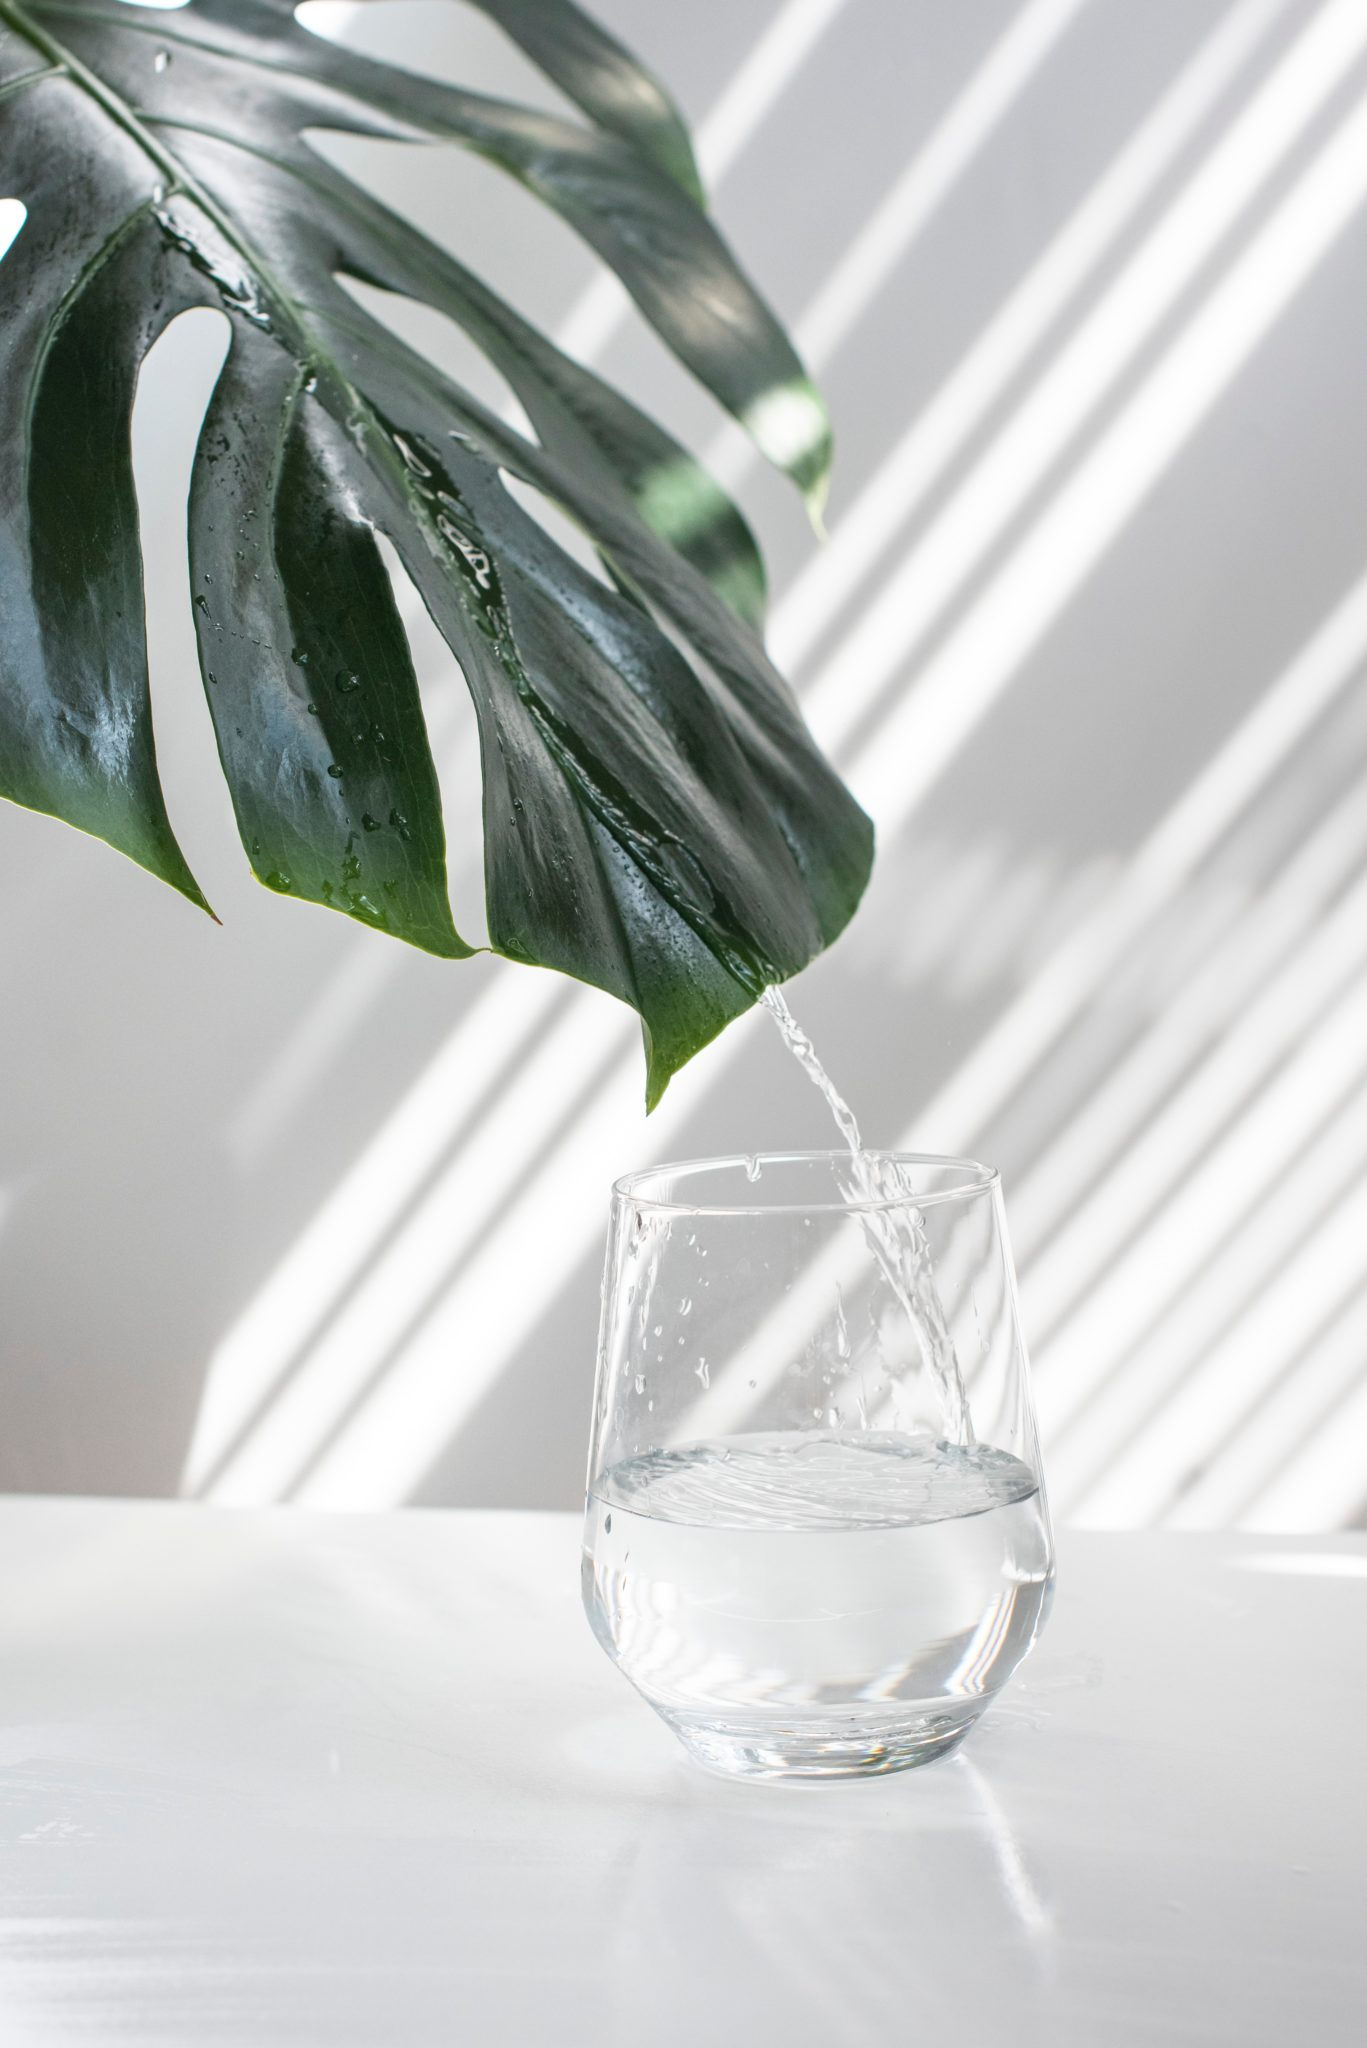 full shot image of a clear glass of water sitting on a white table against a white wall with a green leaf in the top left corner of the background